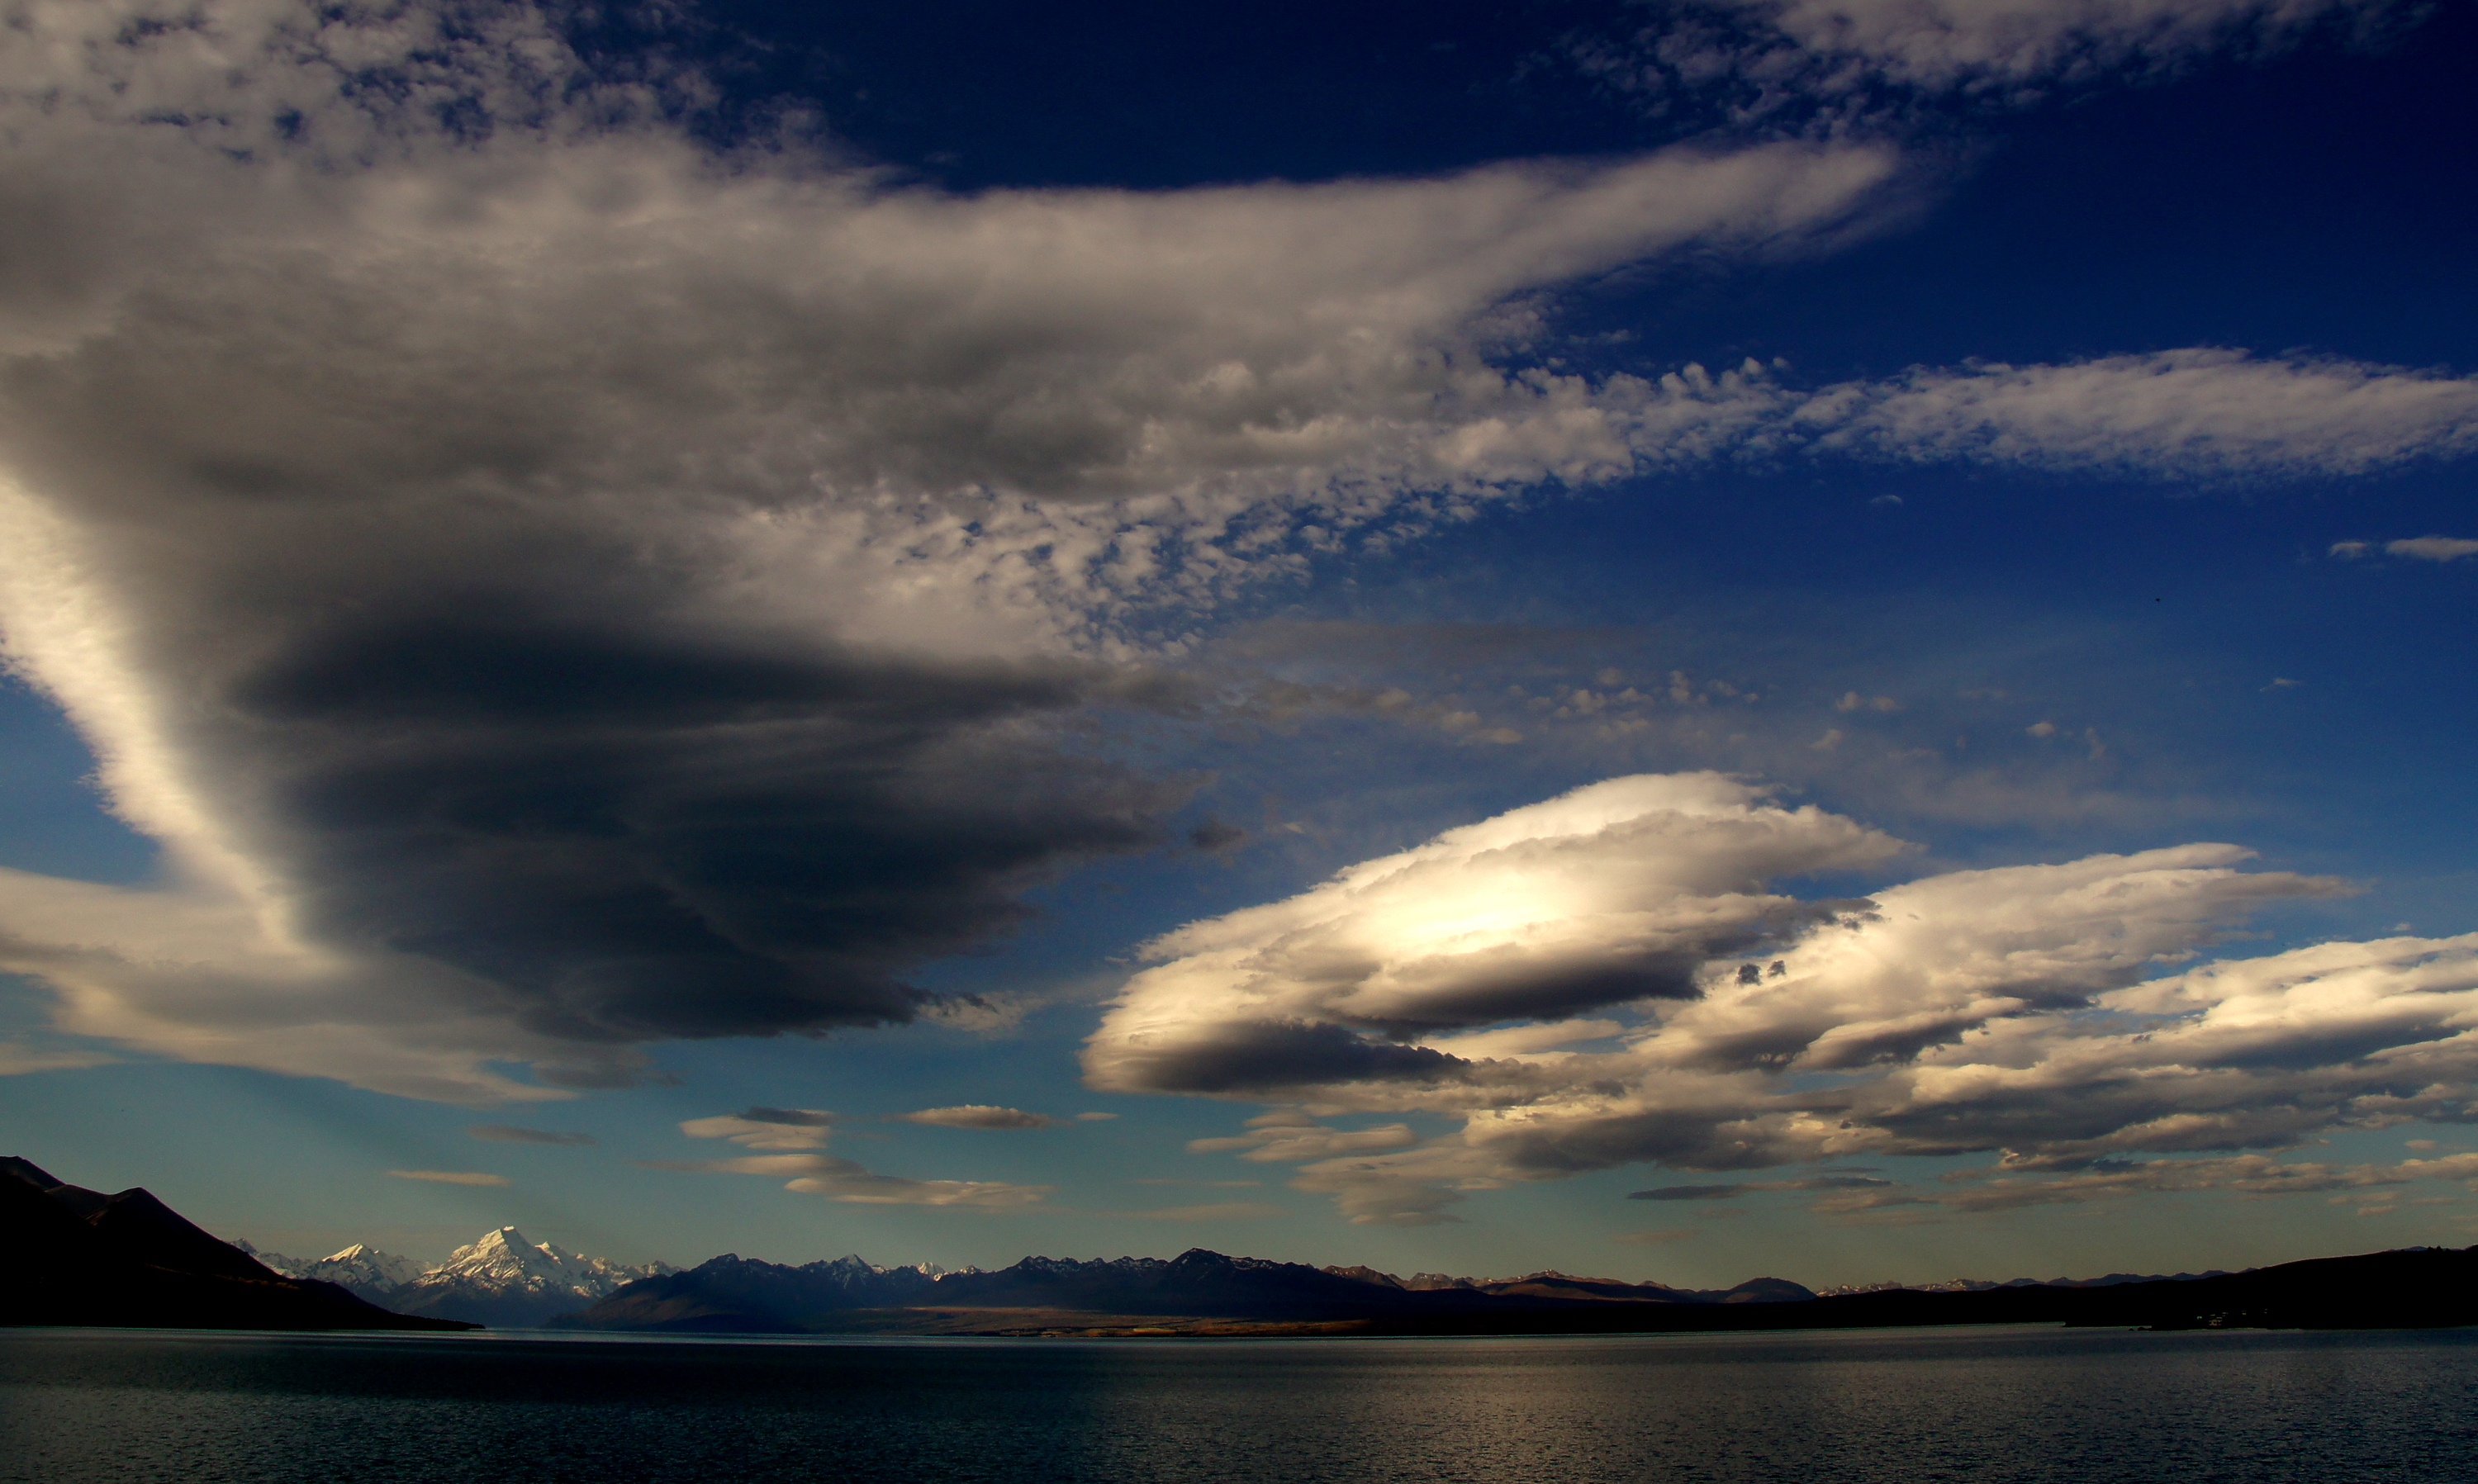 Clouds over Mt Cook. NZ, New zealand, Outdoor, Public Domain Dedication (CC0), Sky, HQ Photo